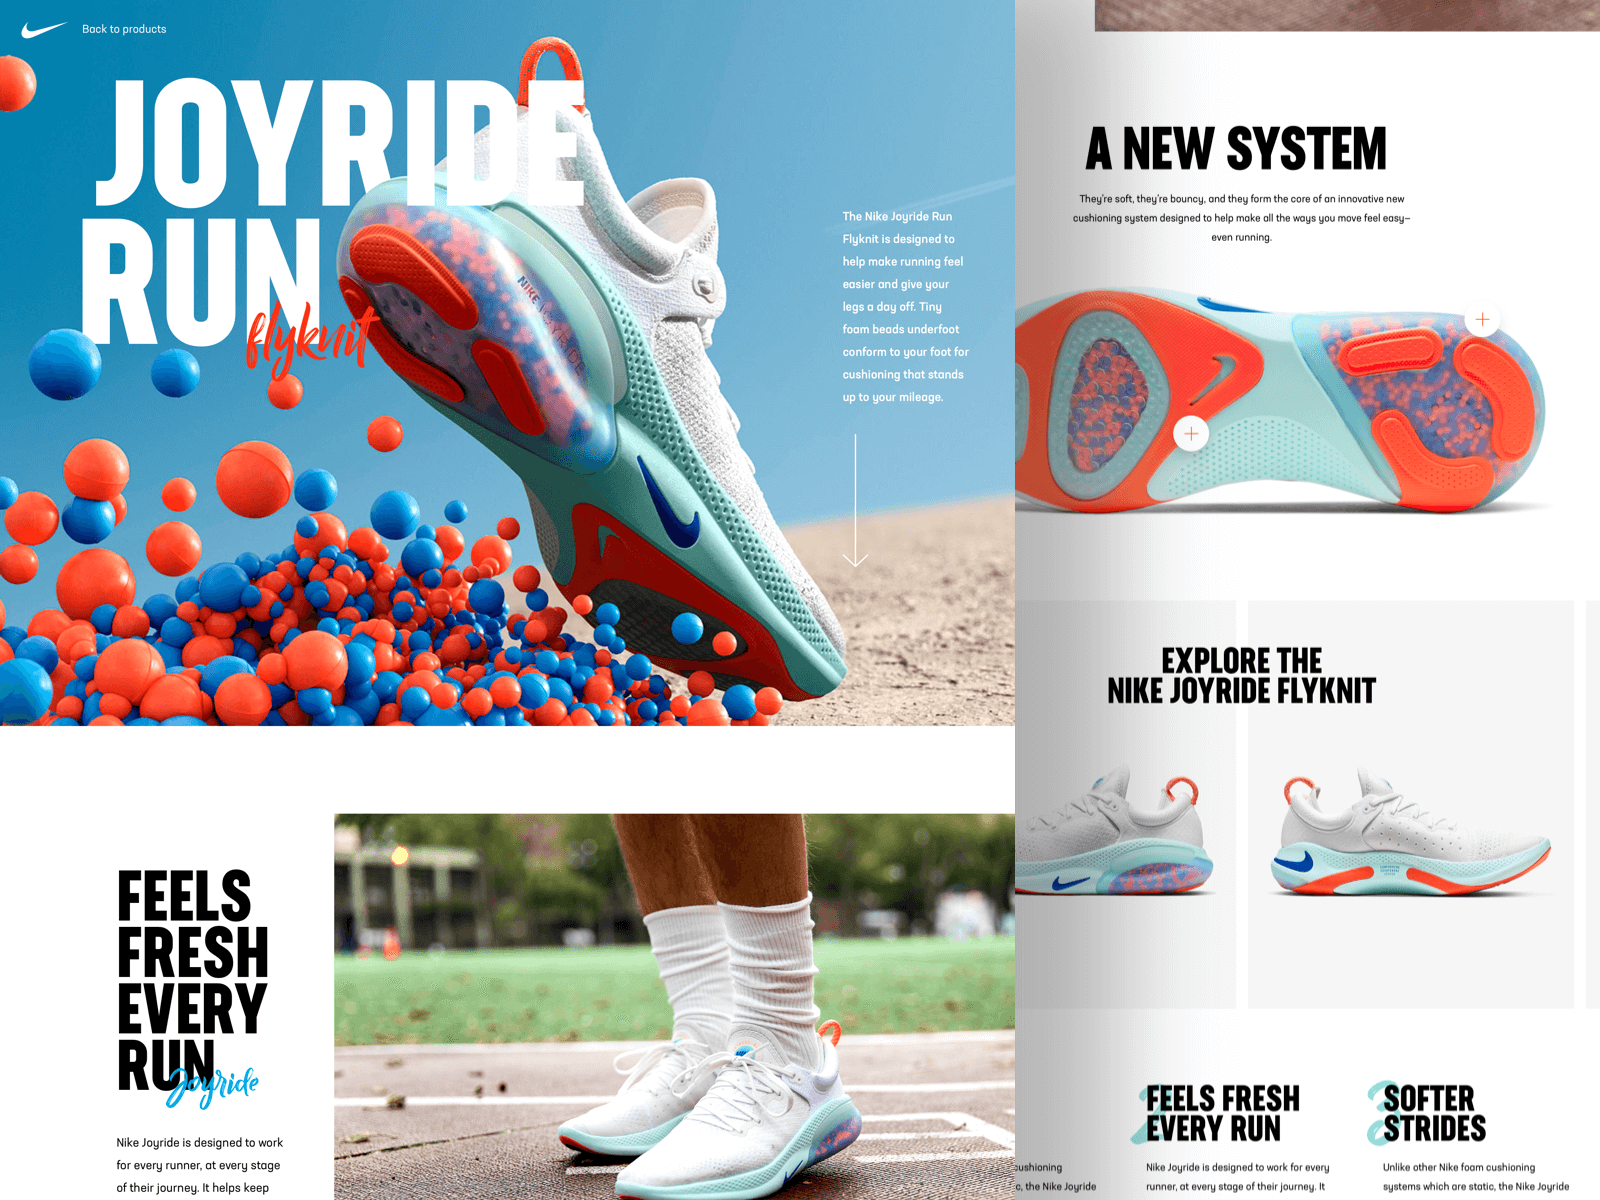 Concept website for the Nike Joyride Run shoes